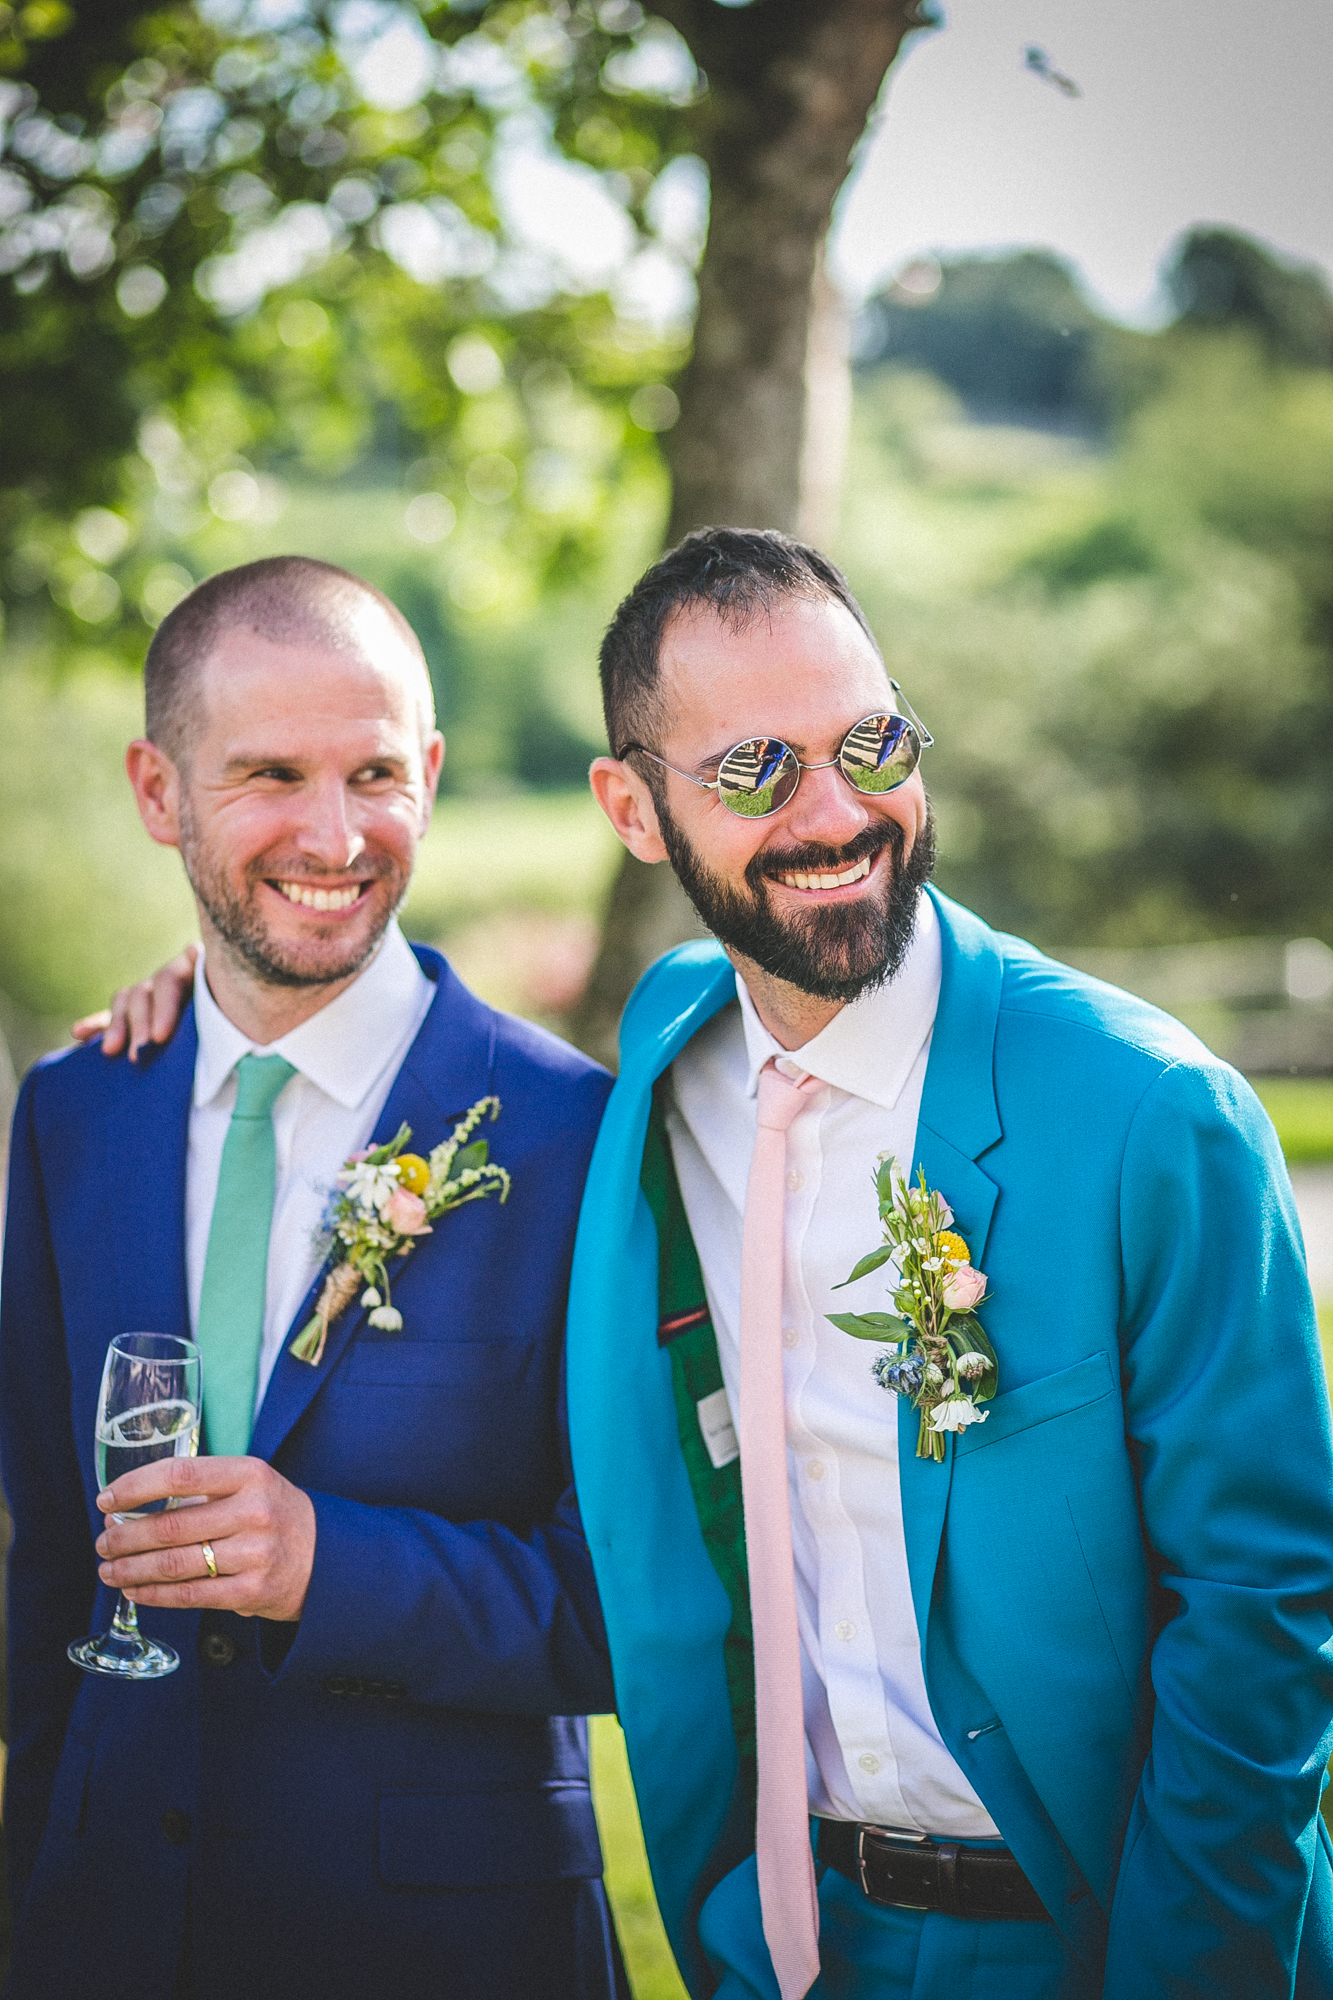 Gay weddings Ireland Millhouse-181.jpg